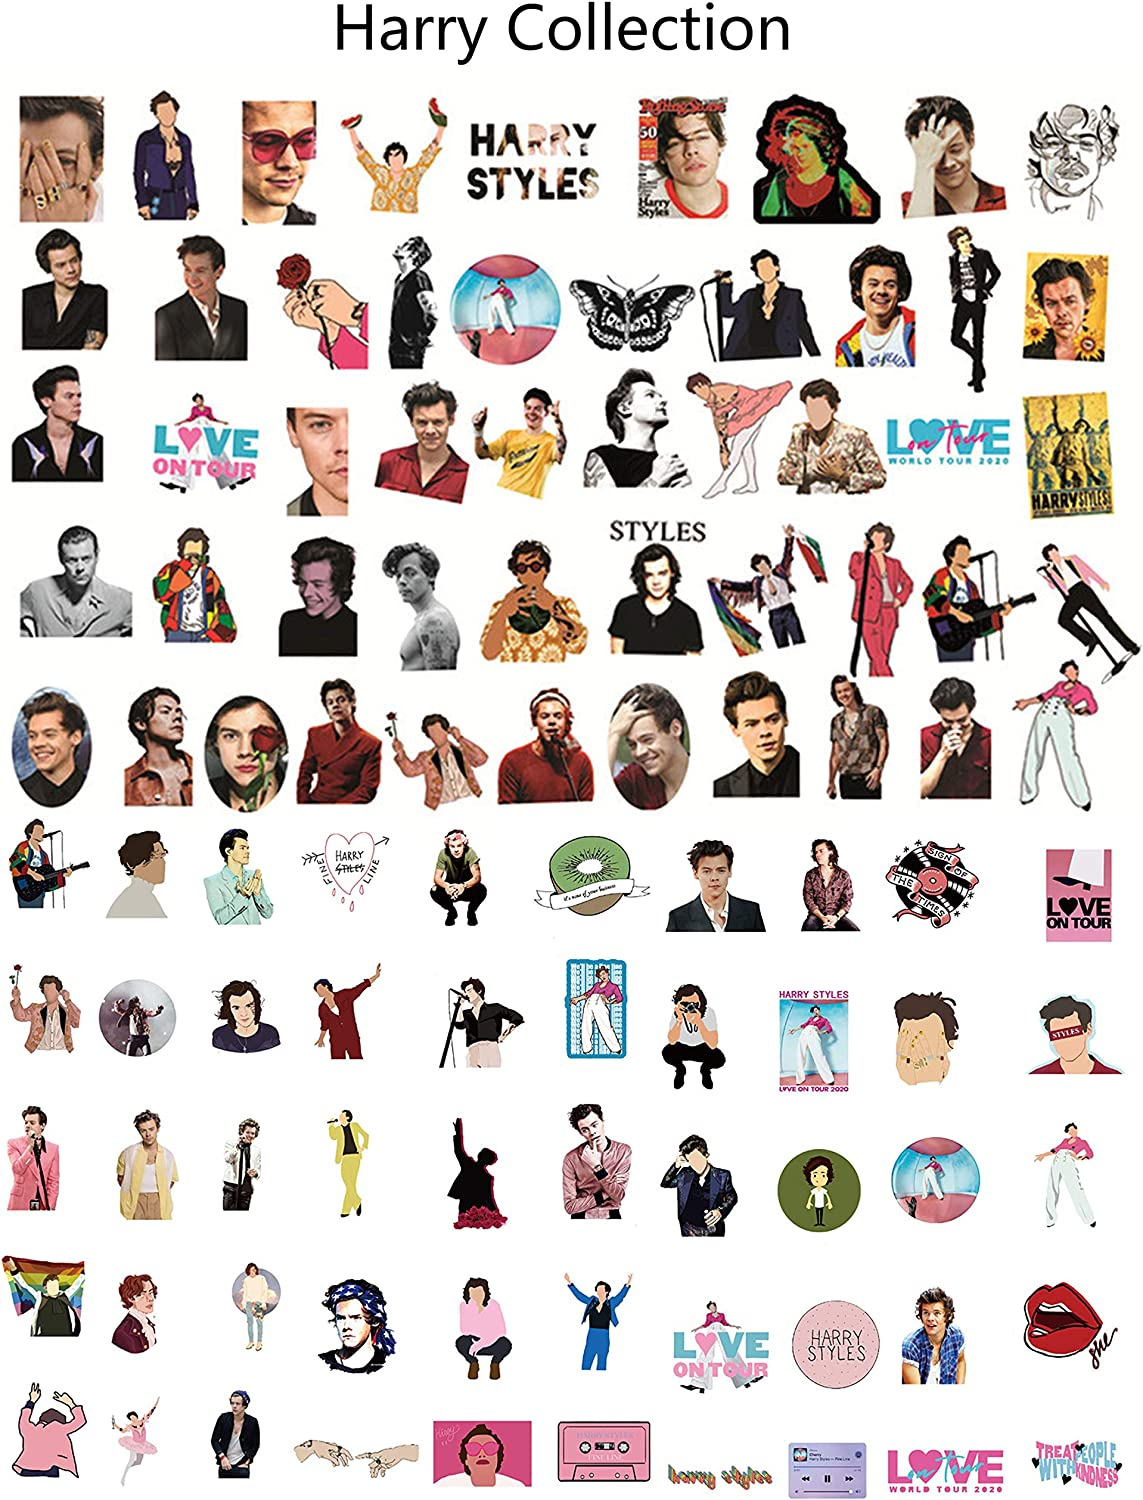 Kilmila Stickers for Singer Harry Style 100PCS Music Film Vinyl Skateboard Guitar Travel Case Sticker Door Laptop Luggage Car Bike Bicycle Stickers (with Rose Pendant Necklace)